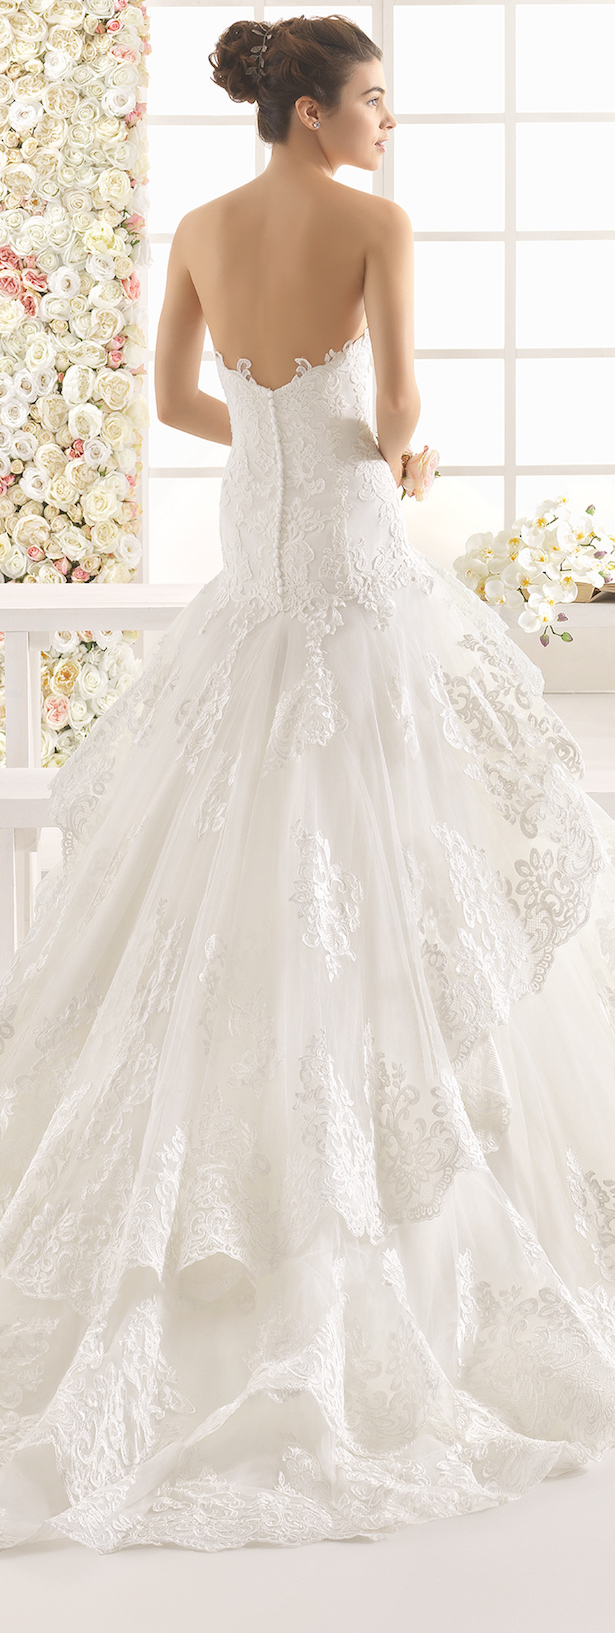 Wedding Gowns with Bows On Back